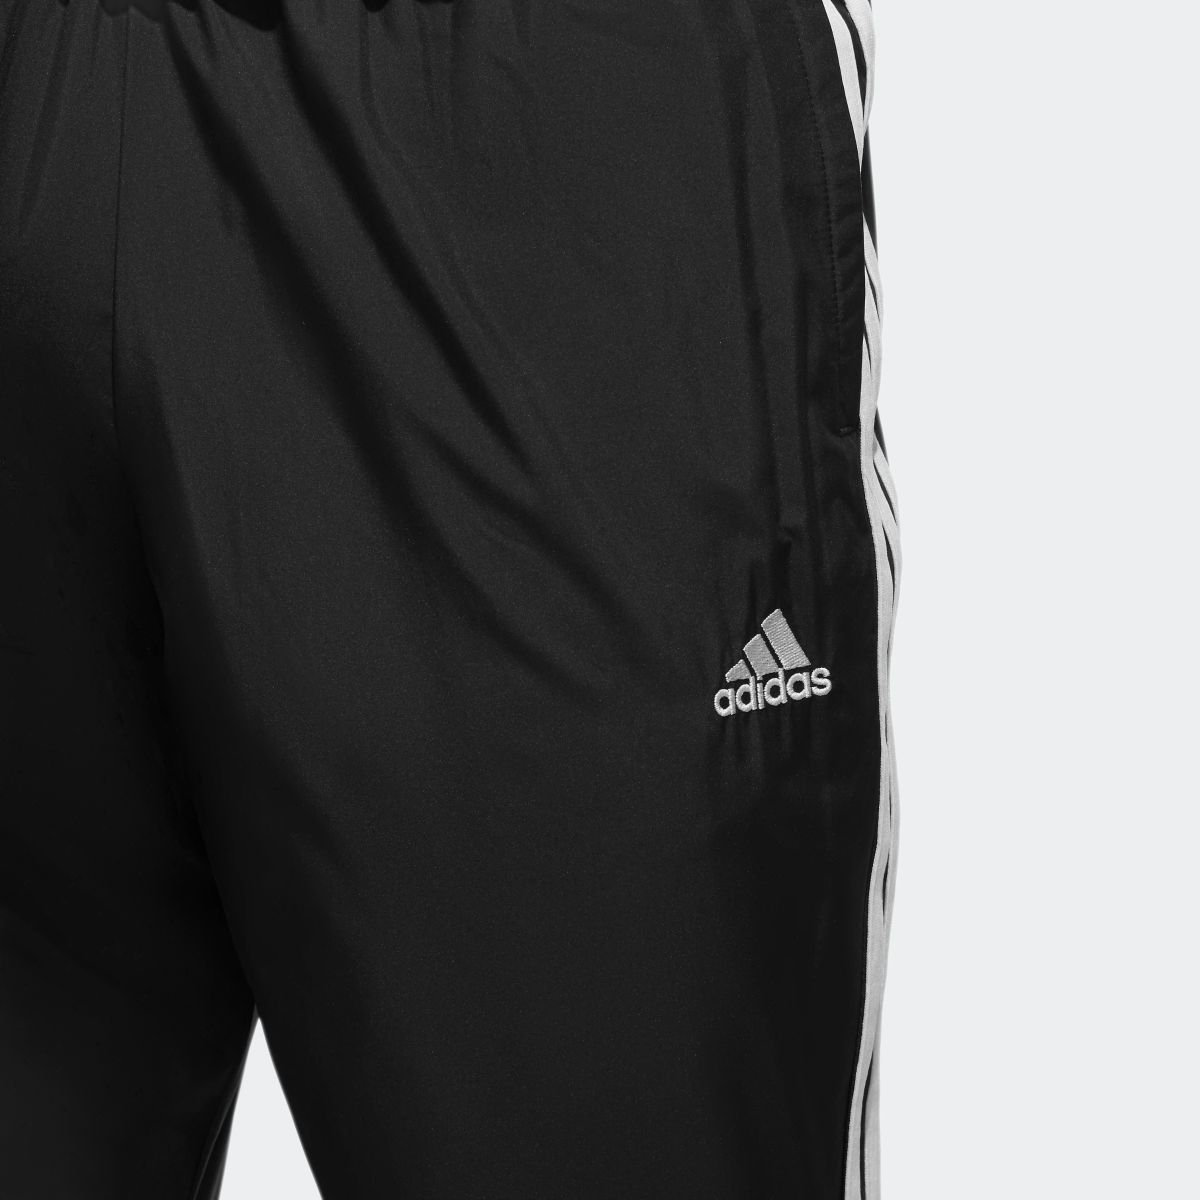 All article point 20 times 0909 17:00 0911 16:59 Adidas adidas M ESSENTIALS 3 stripe wind underwear (back raising) men's ass Rheticusware bottoms